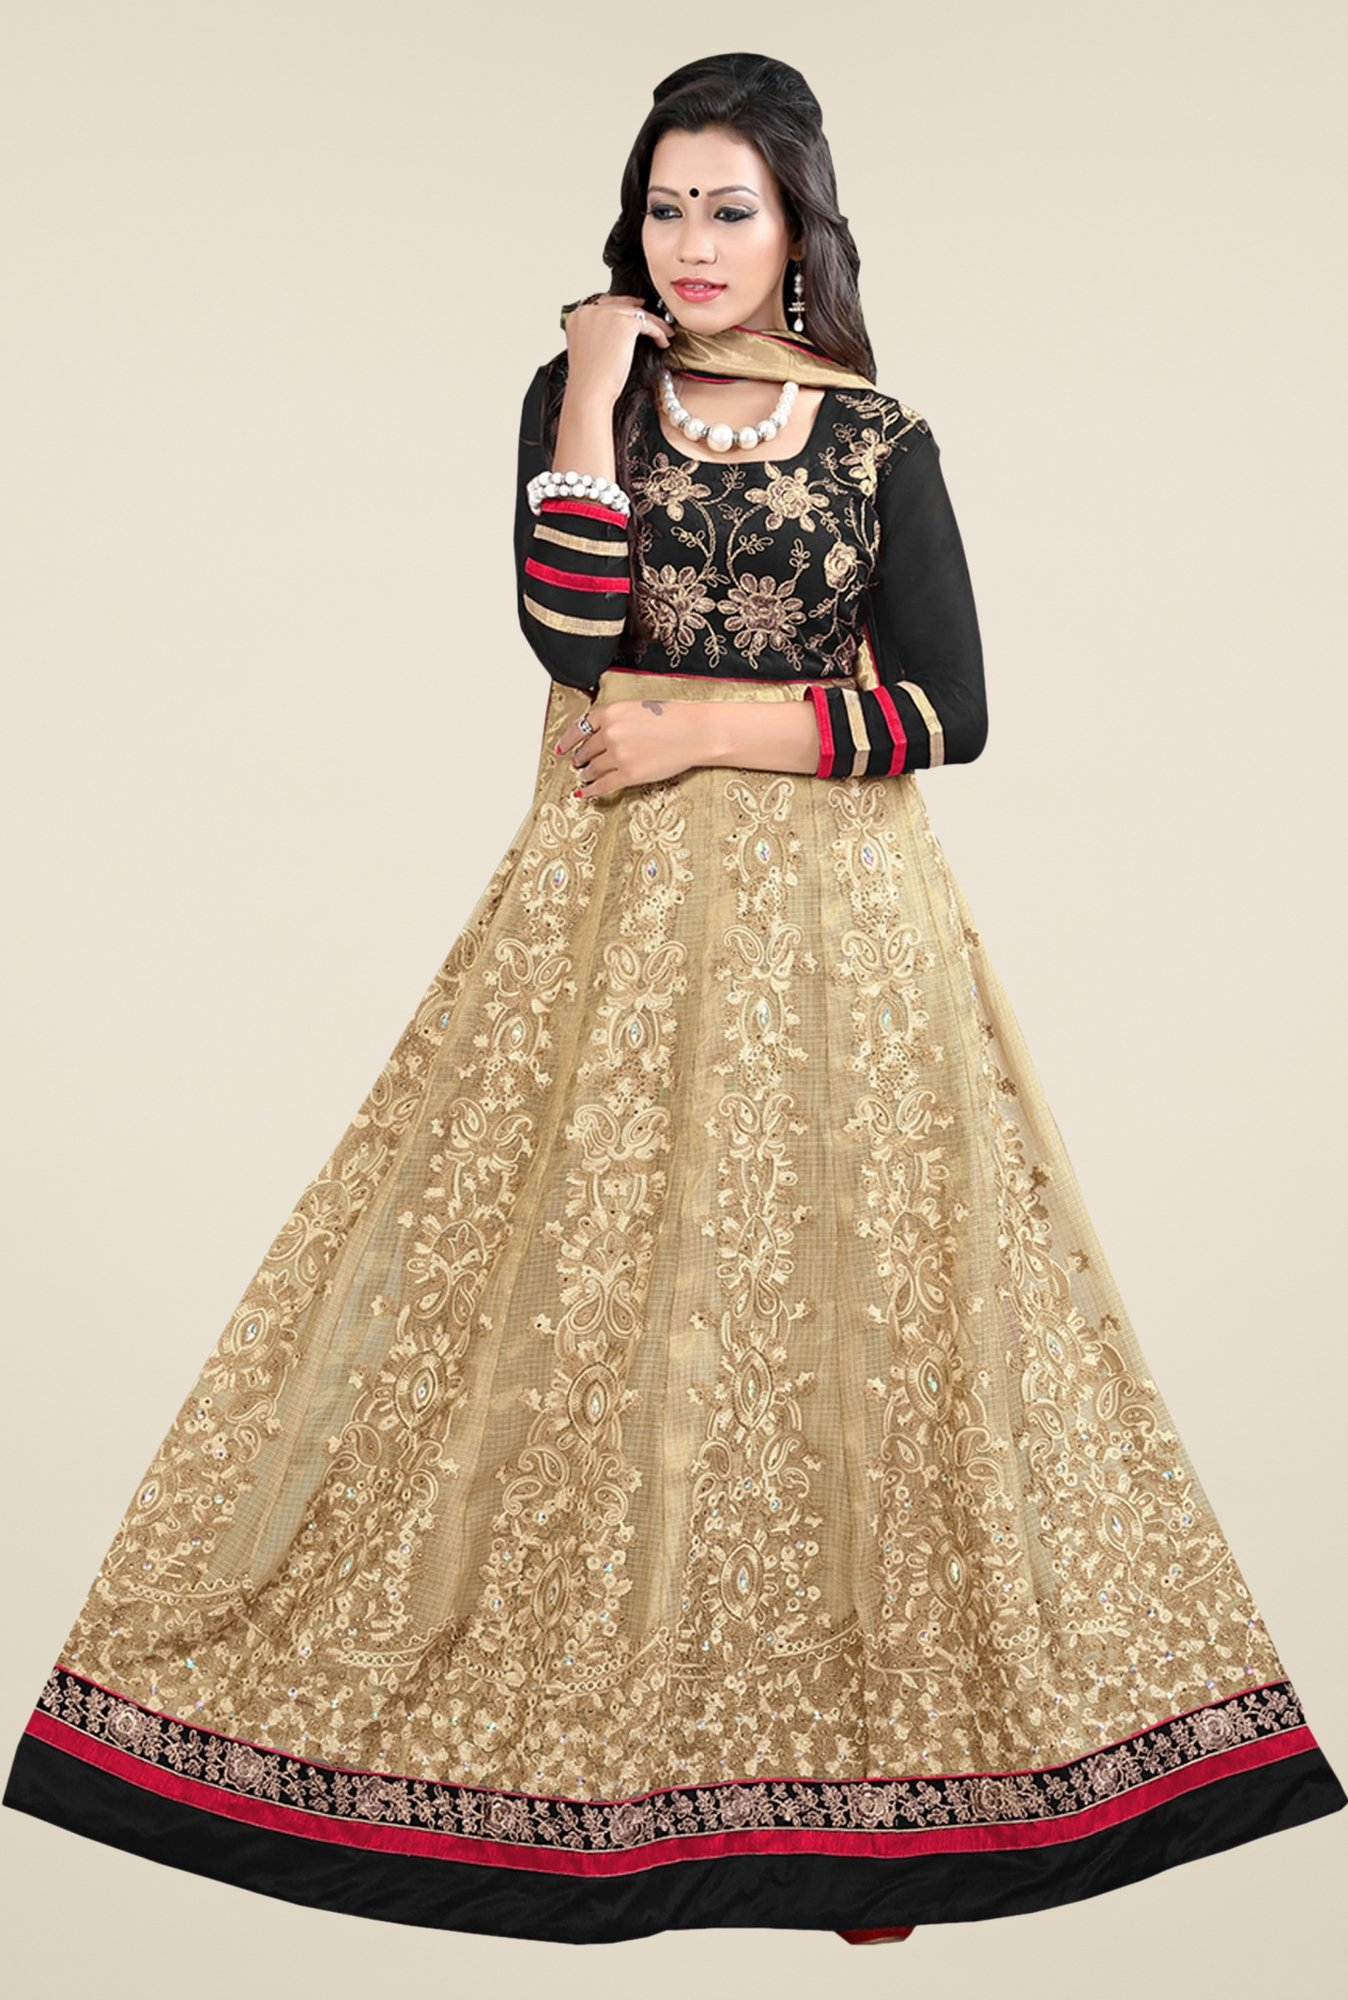 Triveni Beige & Black Embroidered Salwar Kameez